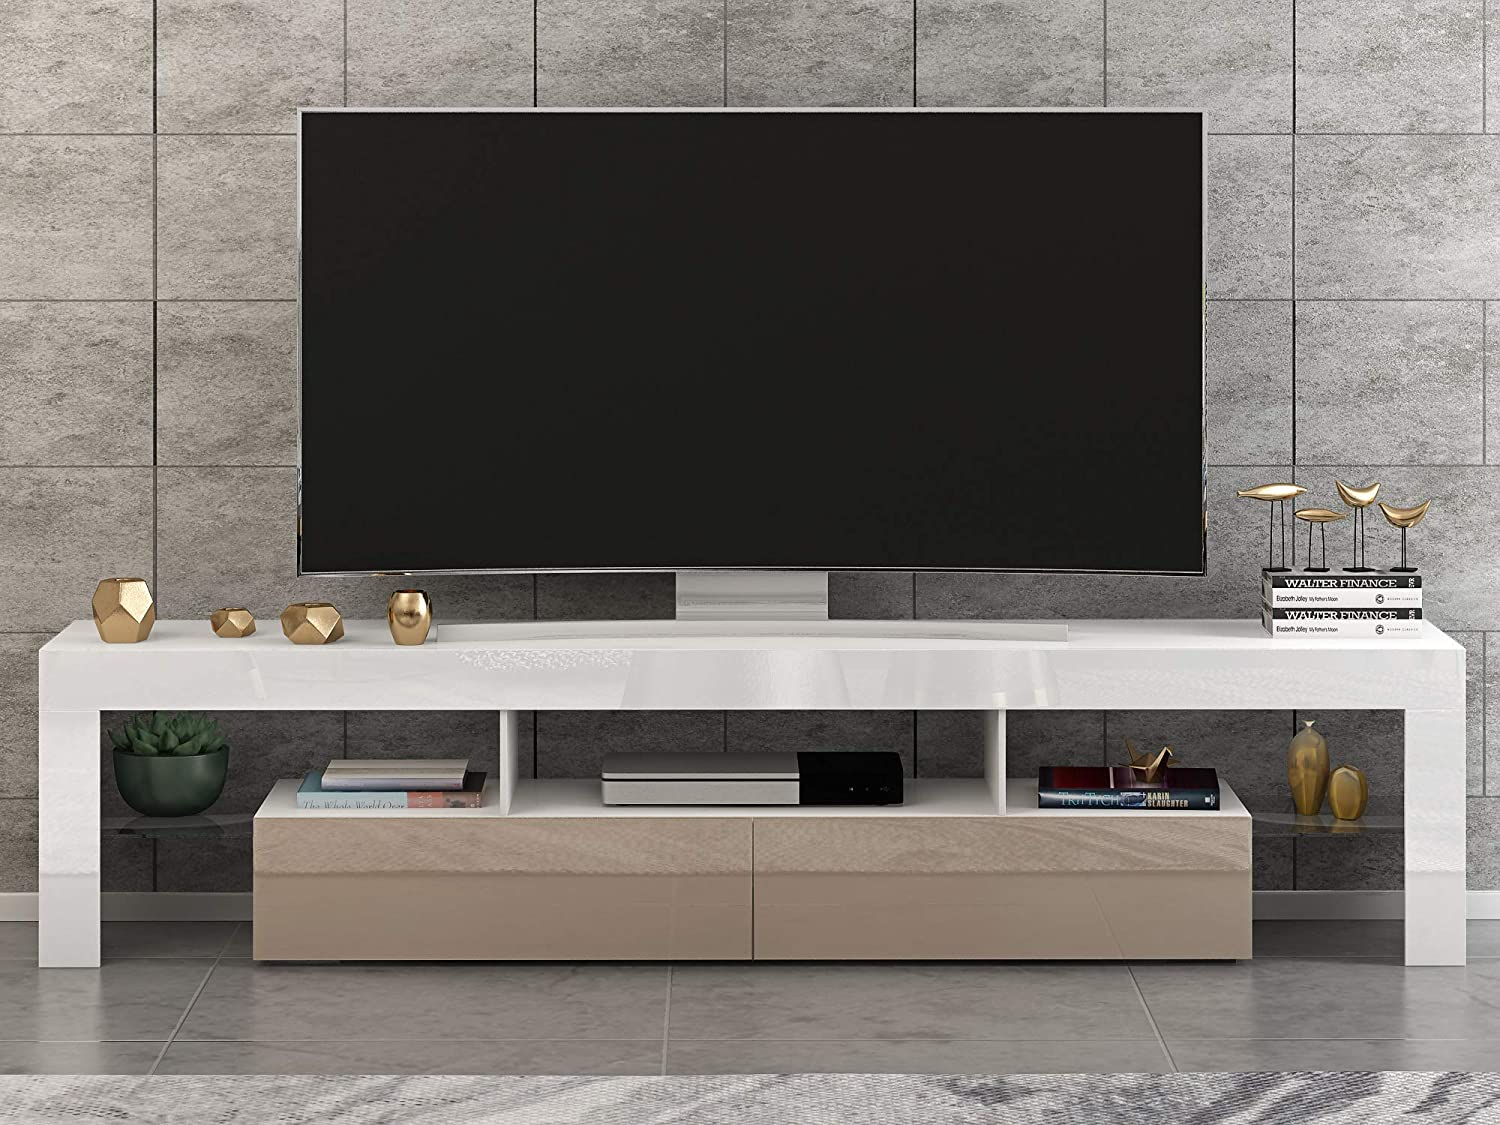 Panana Front RGB LED TV Stand Cabinet Unit Modern 160cm TV Desk with Storage for Entertainment Living Room Black